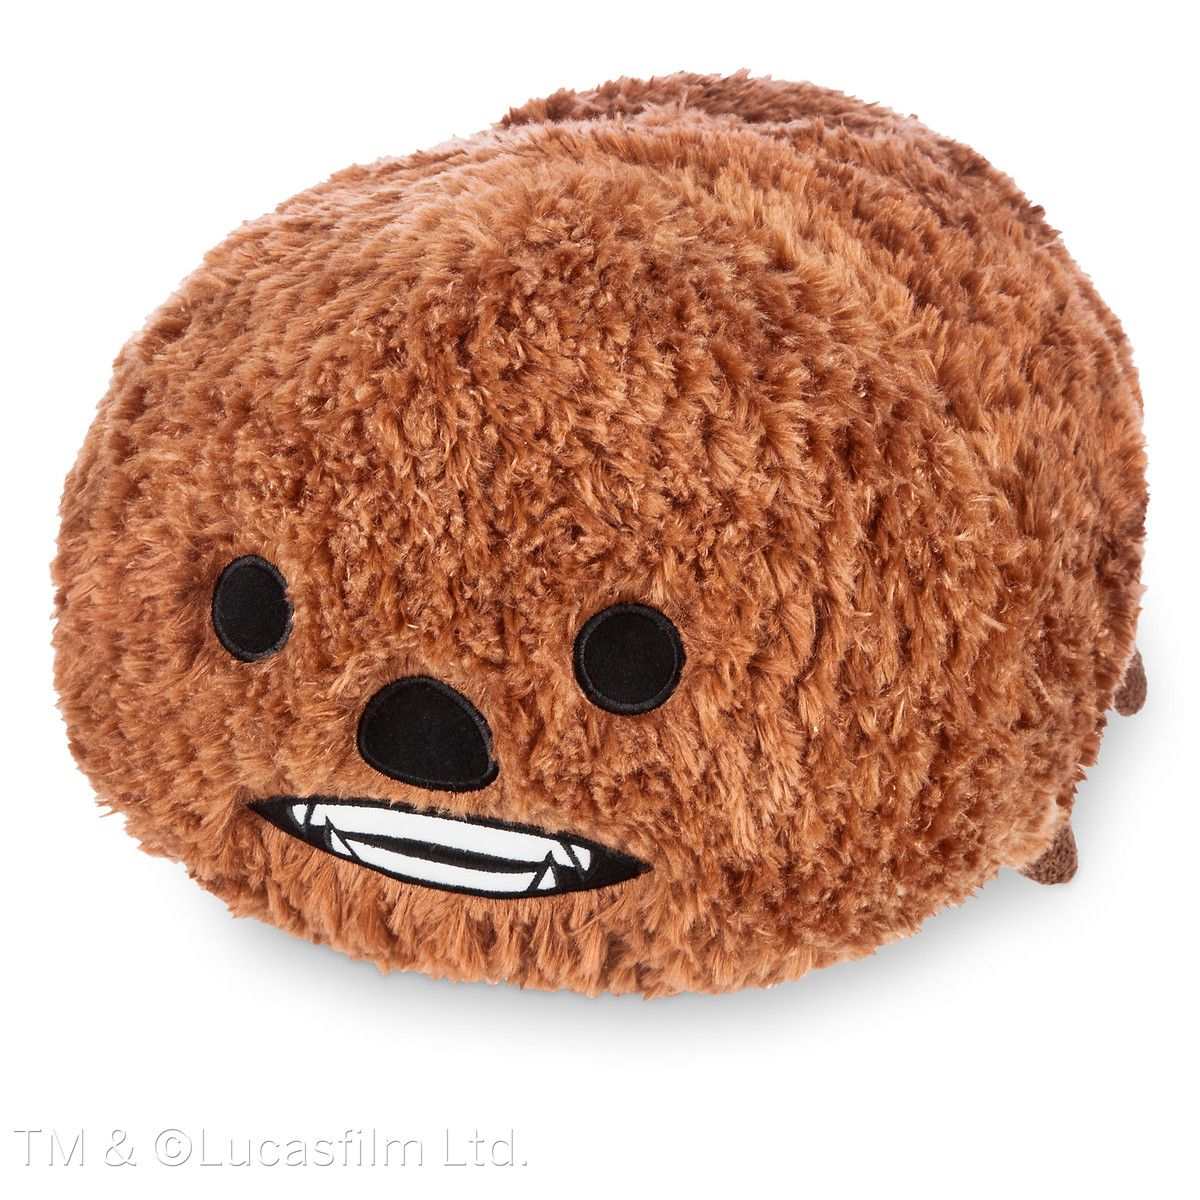 Large Chewbacca Tsum Tsum from the Star Wars Collection